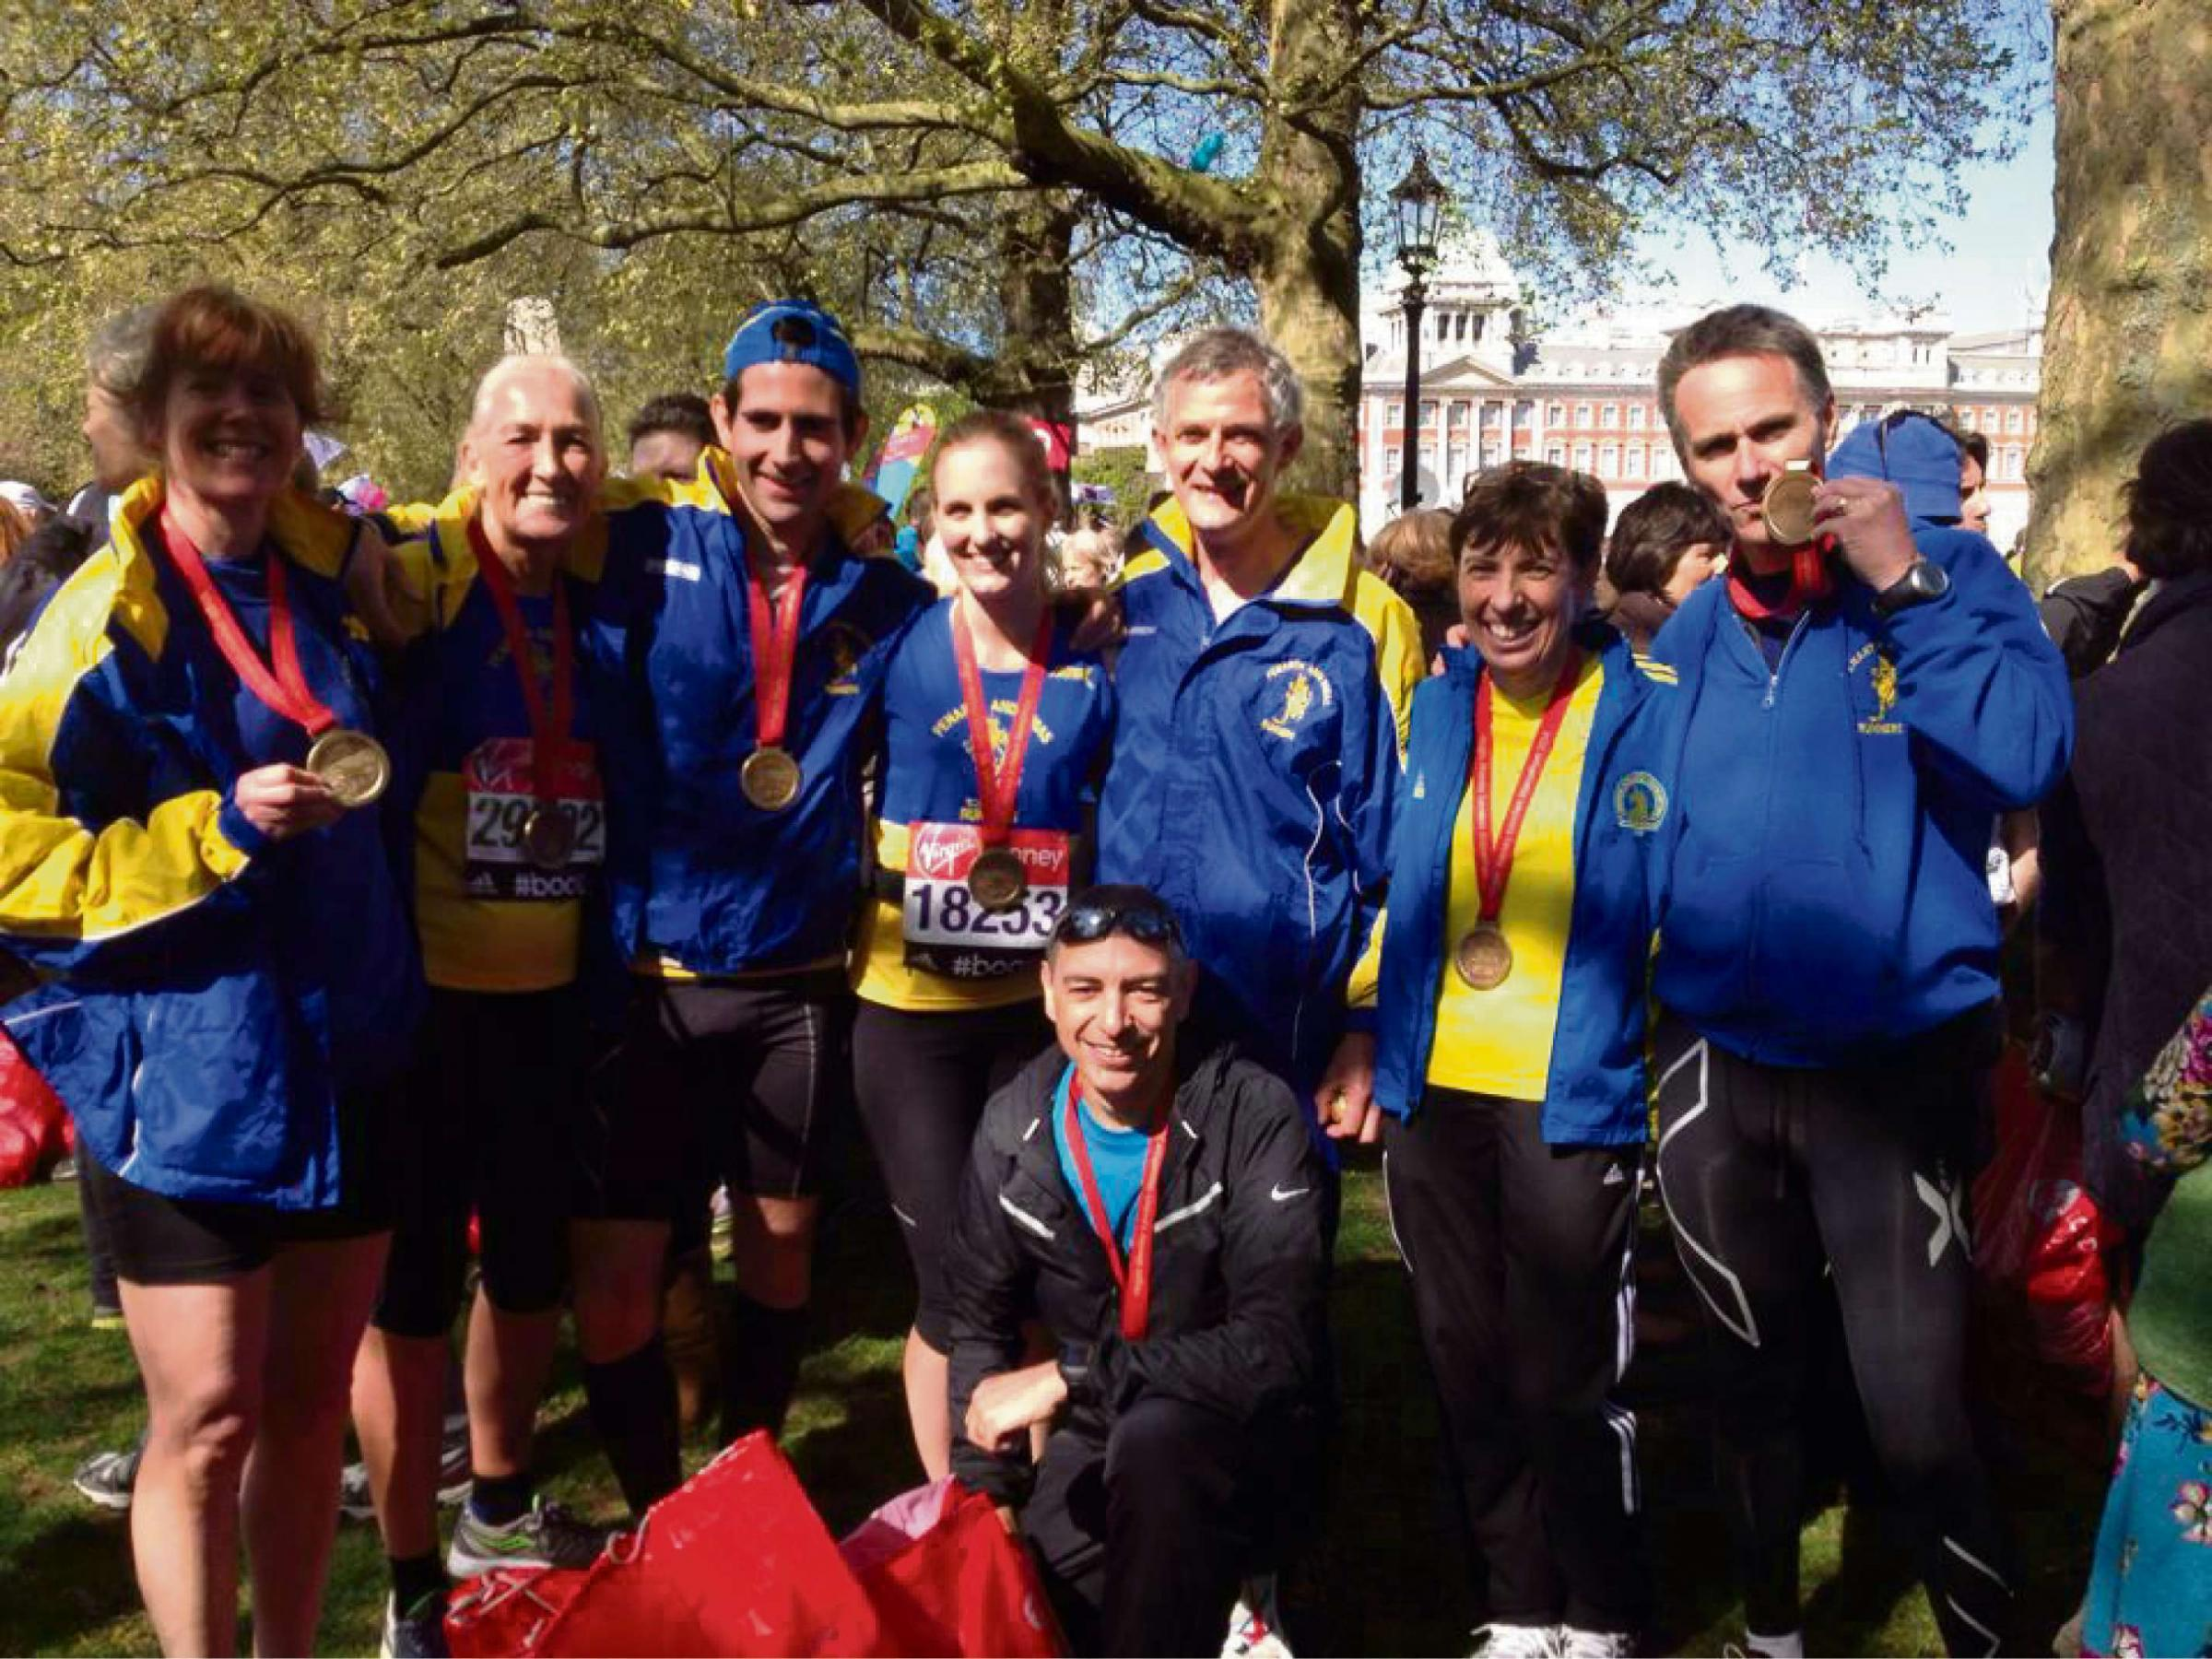 TEAM: Penarth and Dinas Runners after running the London Marathon on Sunday, April 13